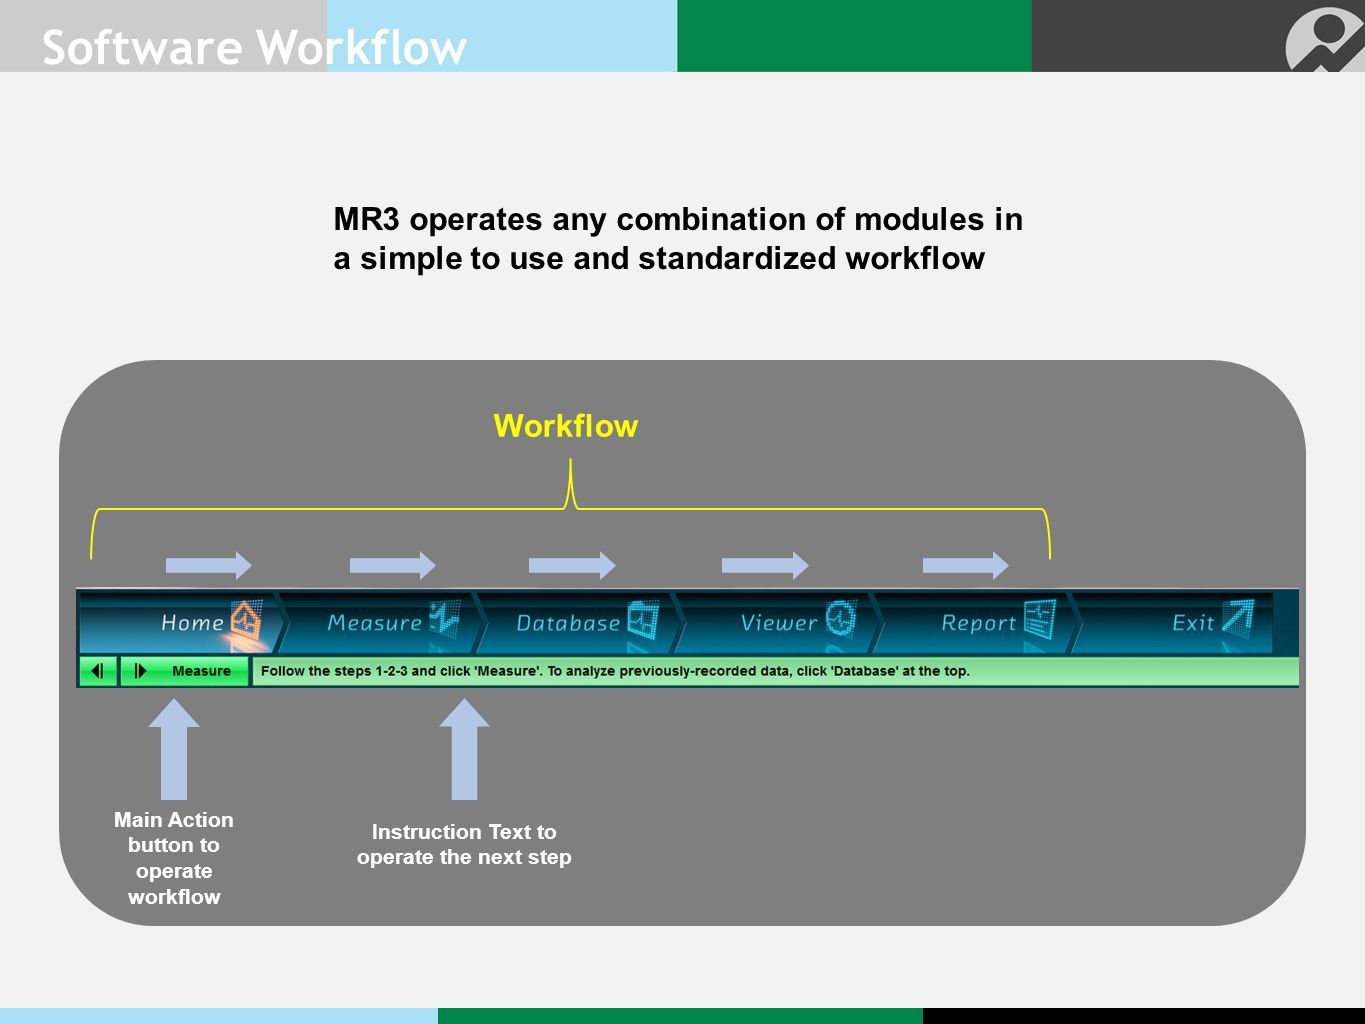 Software Workflow MR3 operates any combination of modules in a simple to use and standardized workflow Workflow Main Action button to operate workflow Instruction Text to operate the next step